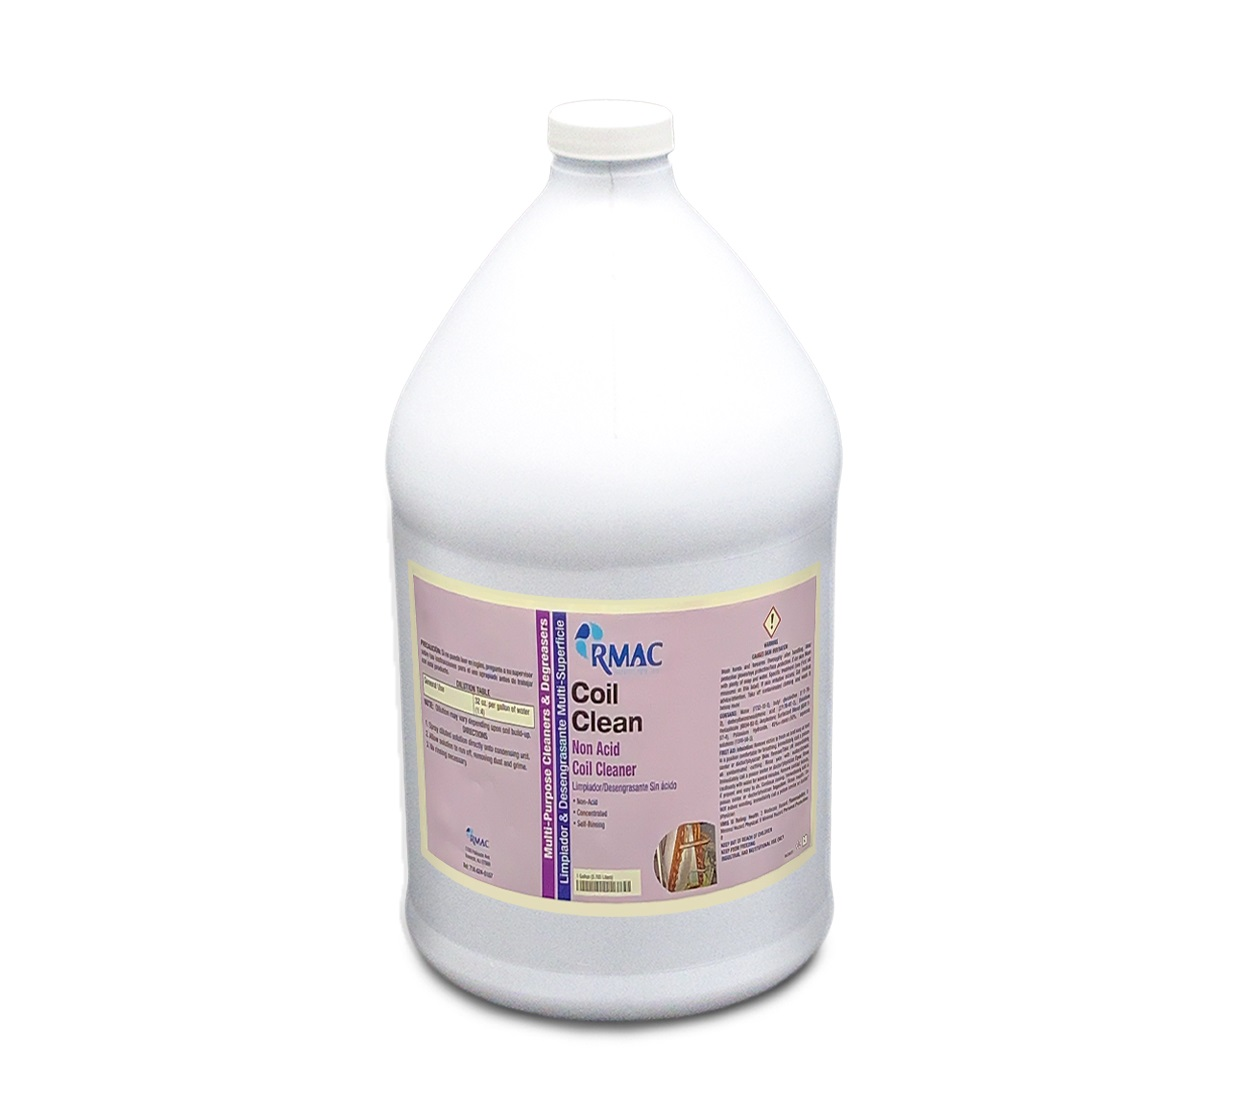 Coil Clean Non-acid Coil Cleaner 4/1 Gal (4/cs)